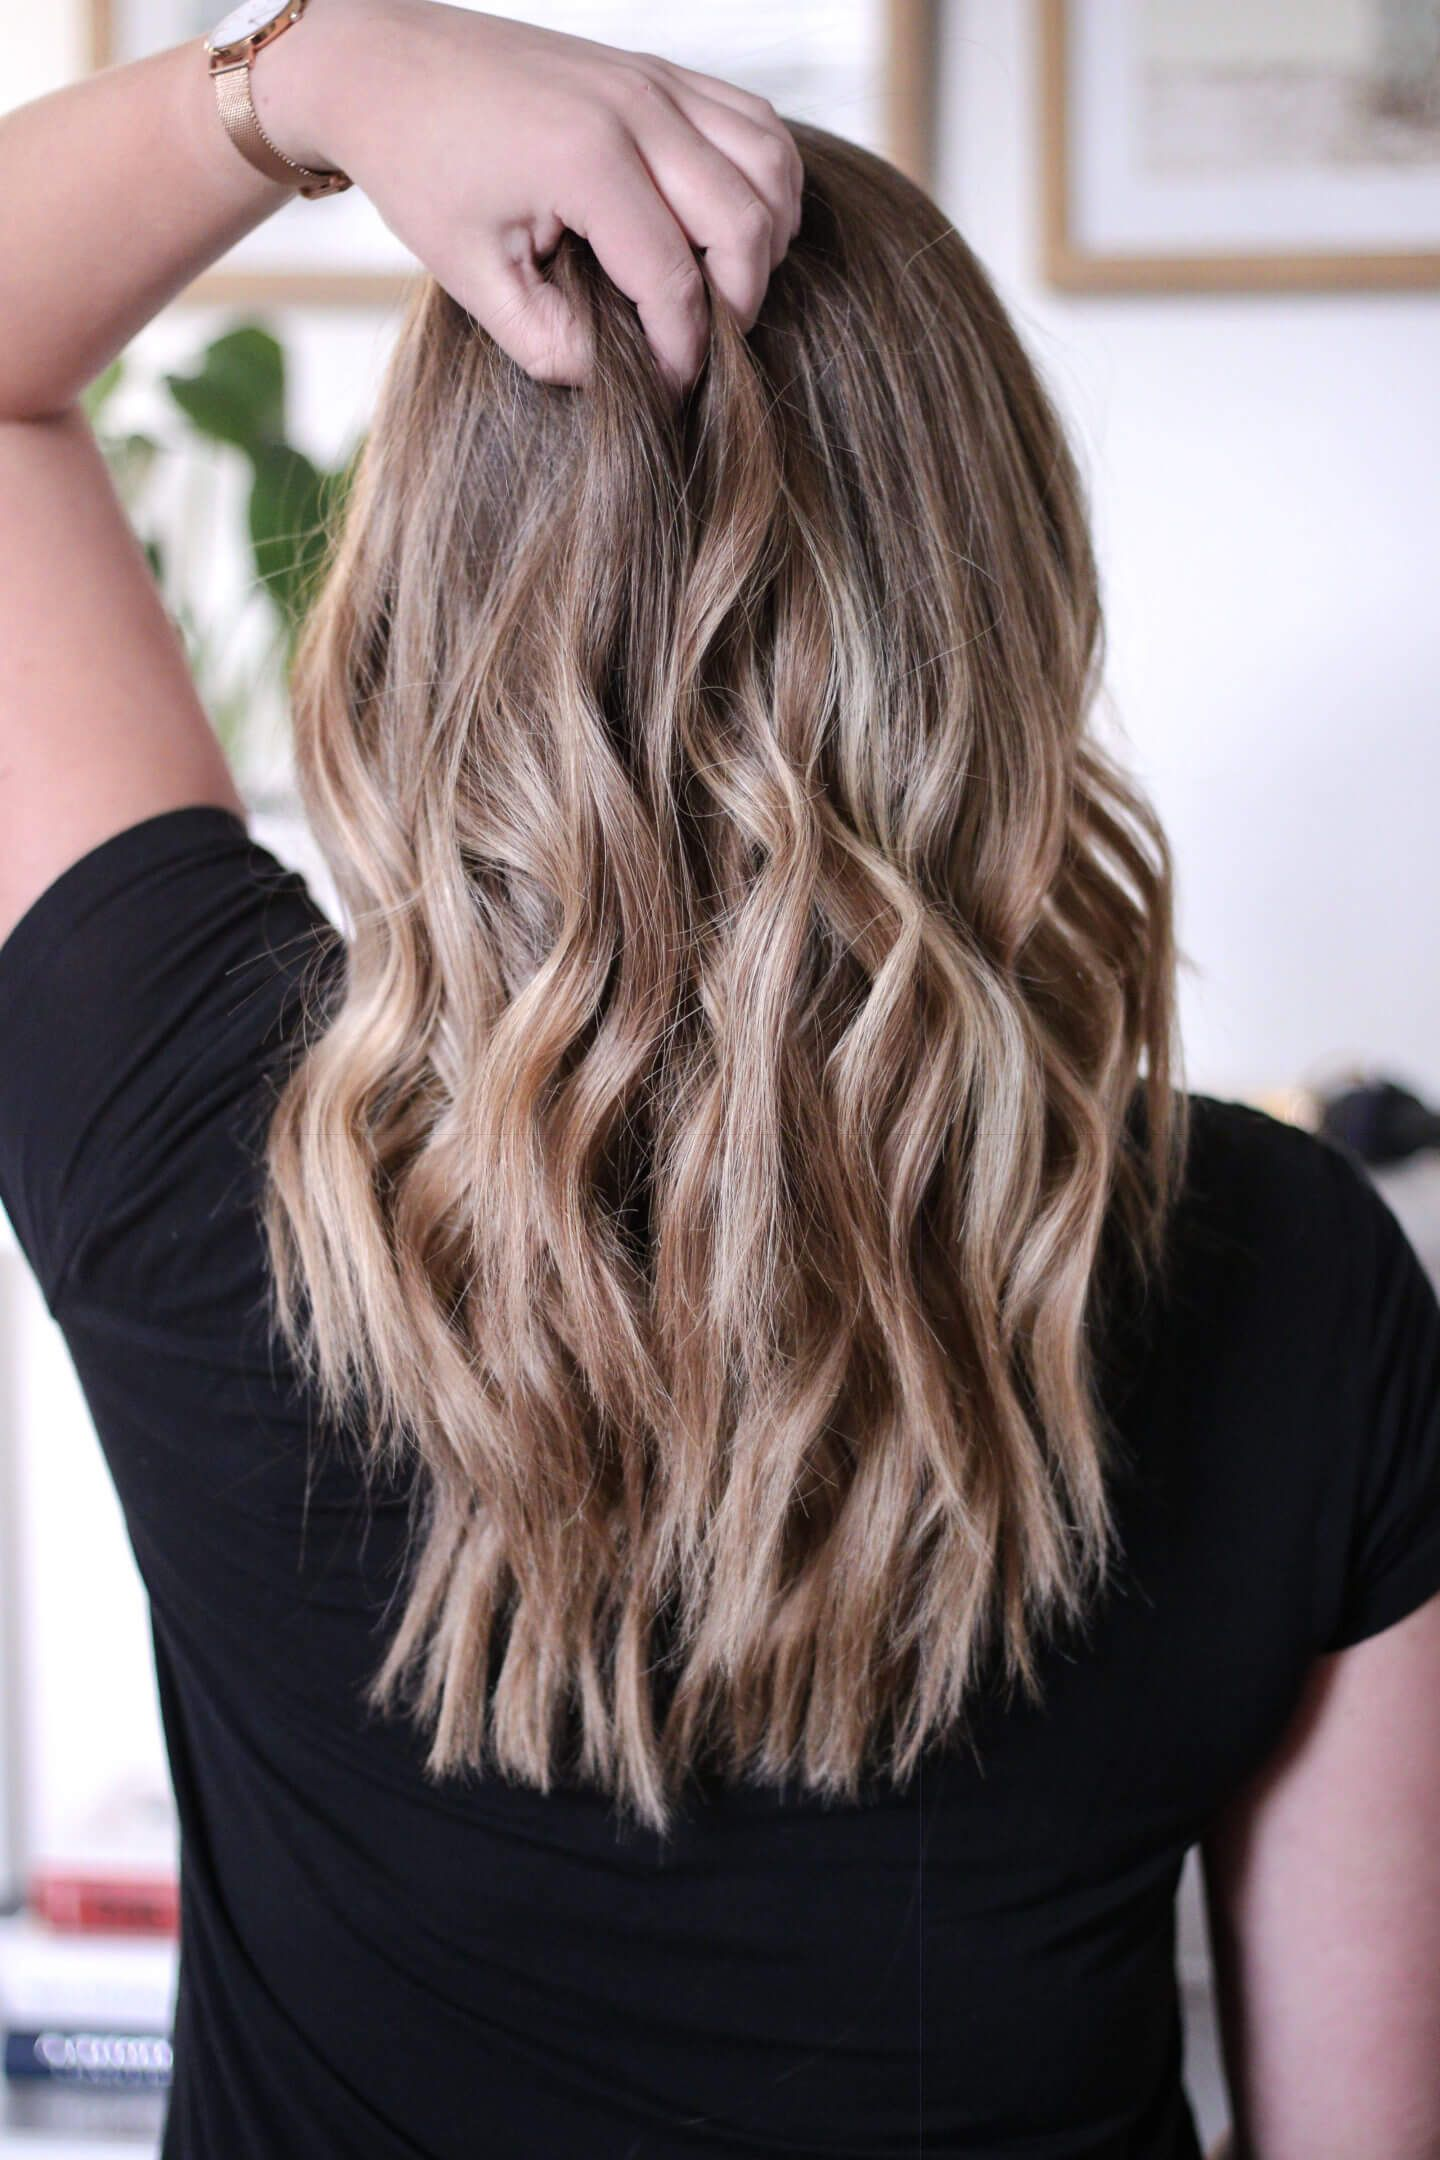 Beach Waves With A Curling Iron Curling Iron Hairstyles Loose Curls Hairstyles Beach Waves Long Hair